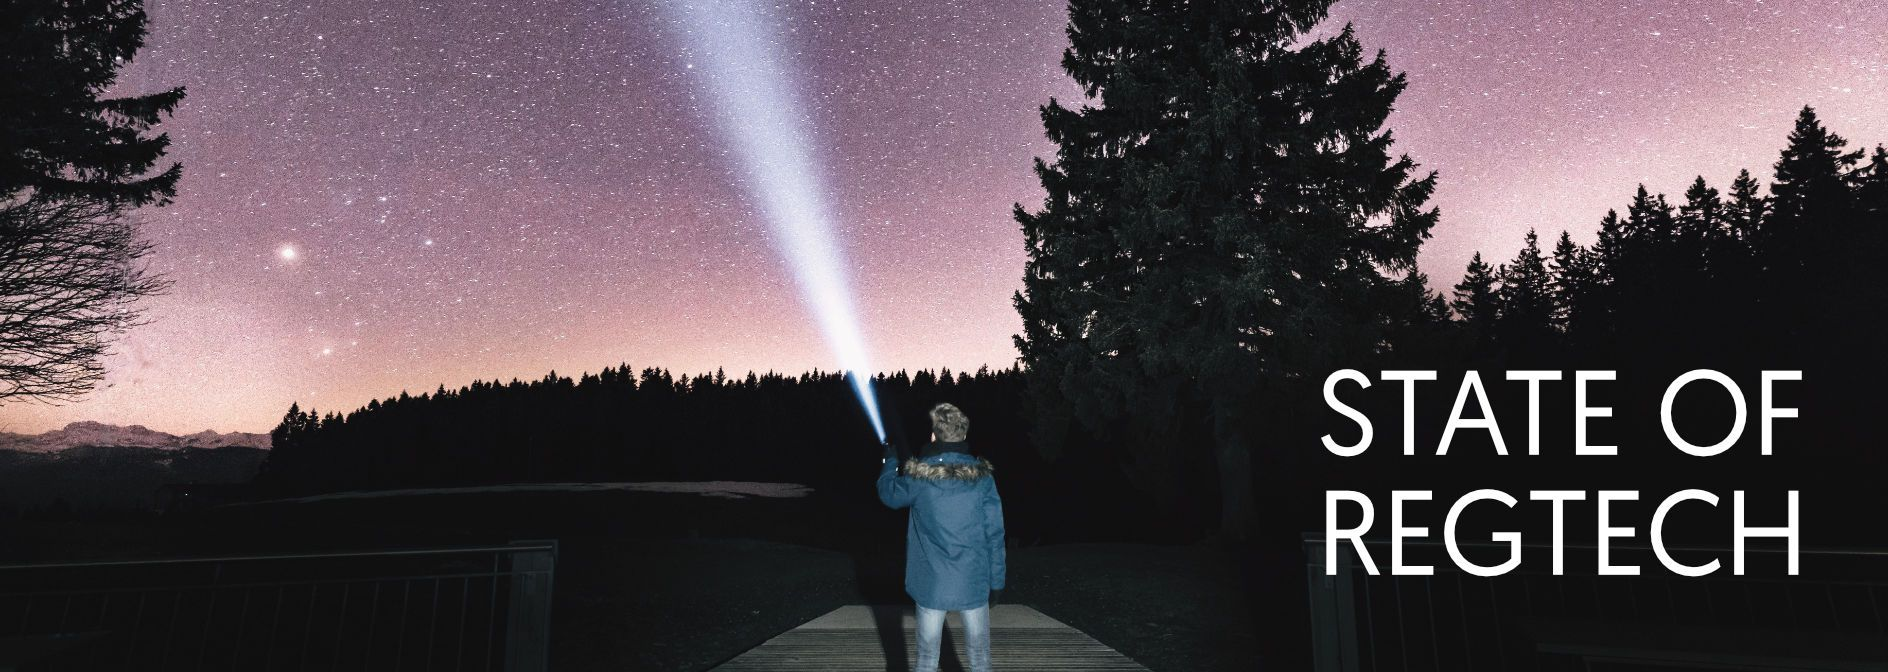 man standing in nature with a flash light pointing at the sky